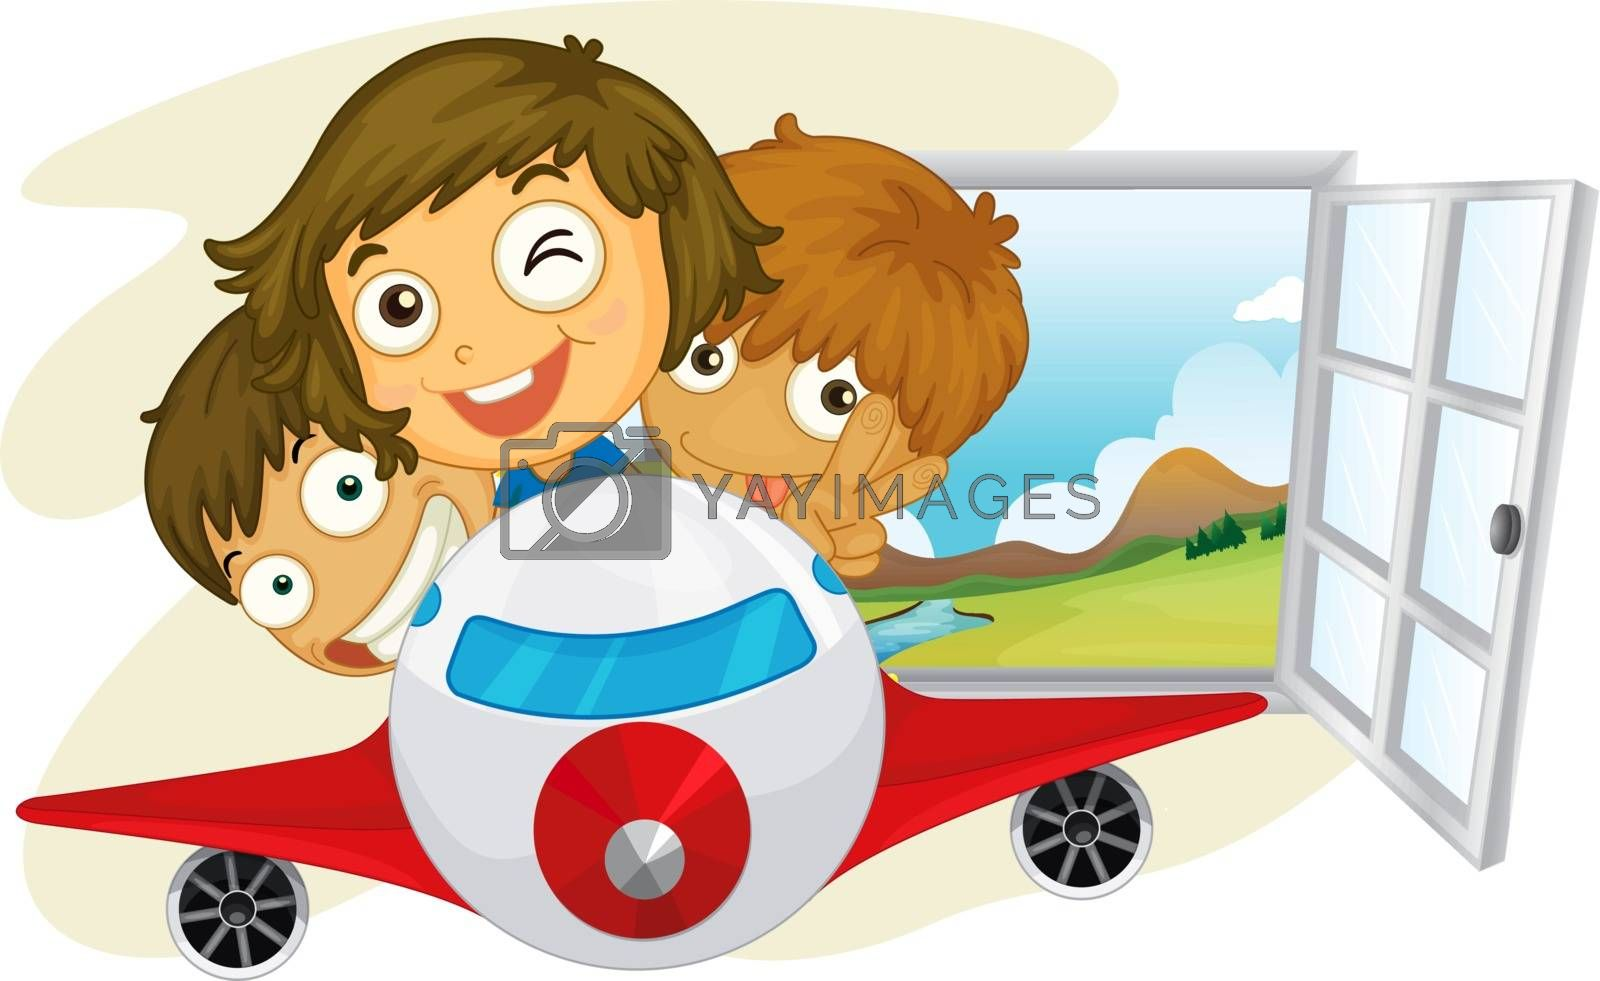 Illustration of the kids riding on an airplane on a white background